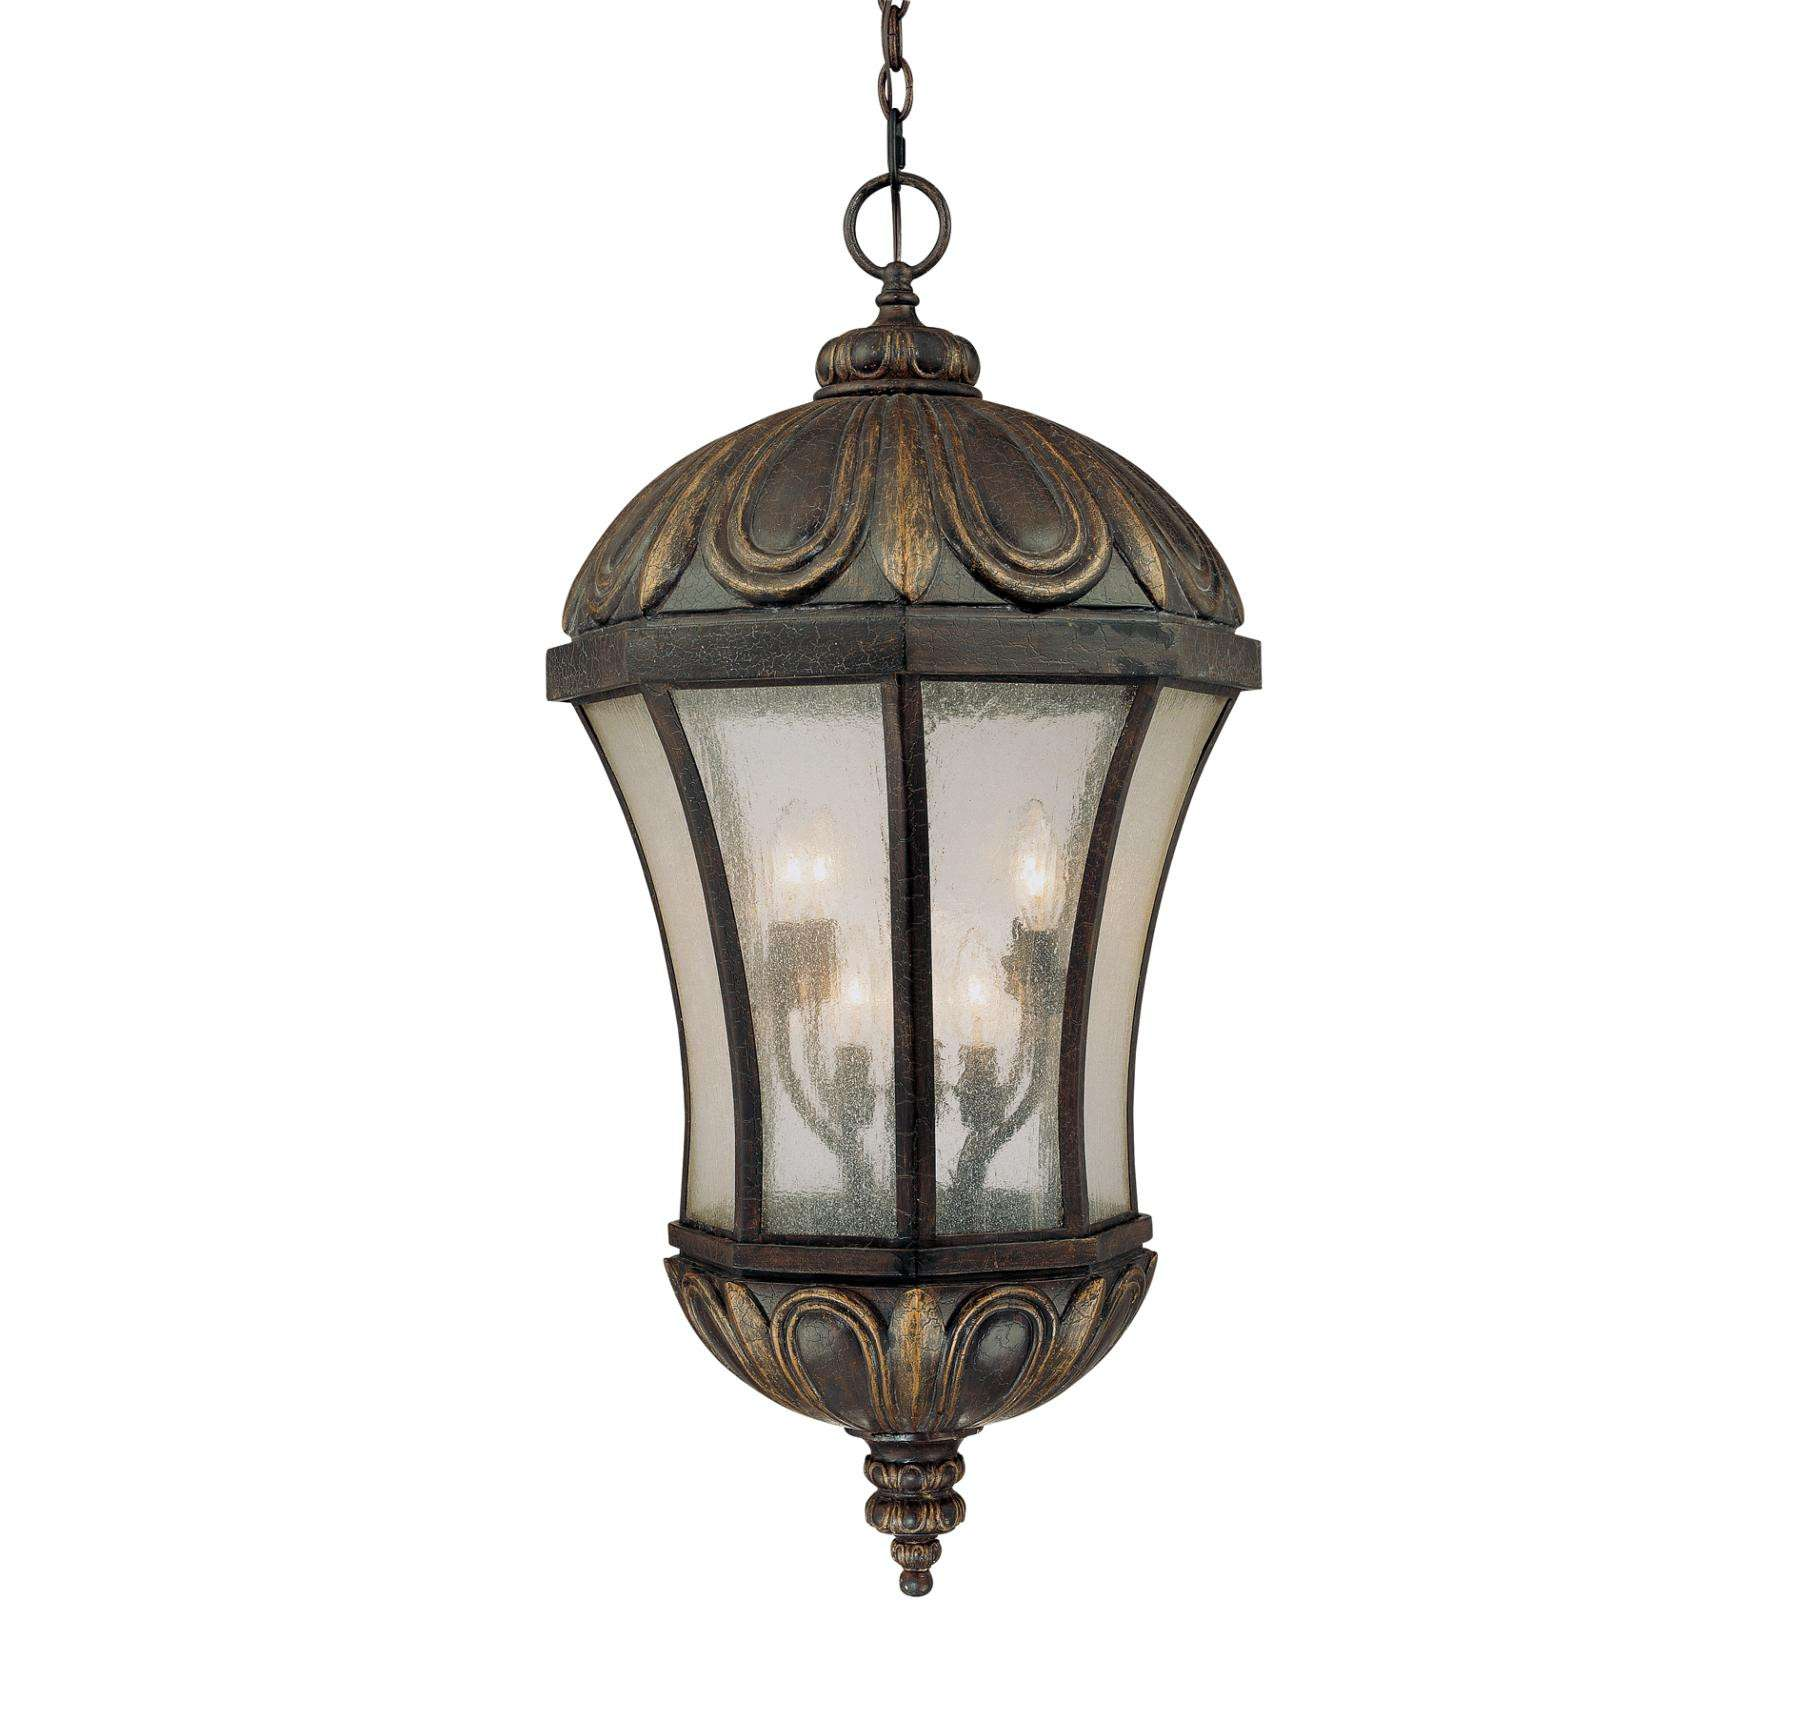 Savoy House 5-2505-306 Ponce de Leon Hanging Lantern in Old Tuscan Finish with Pale Cream Seeded glass